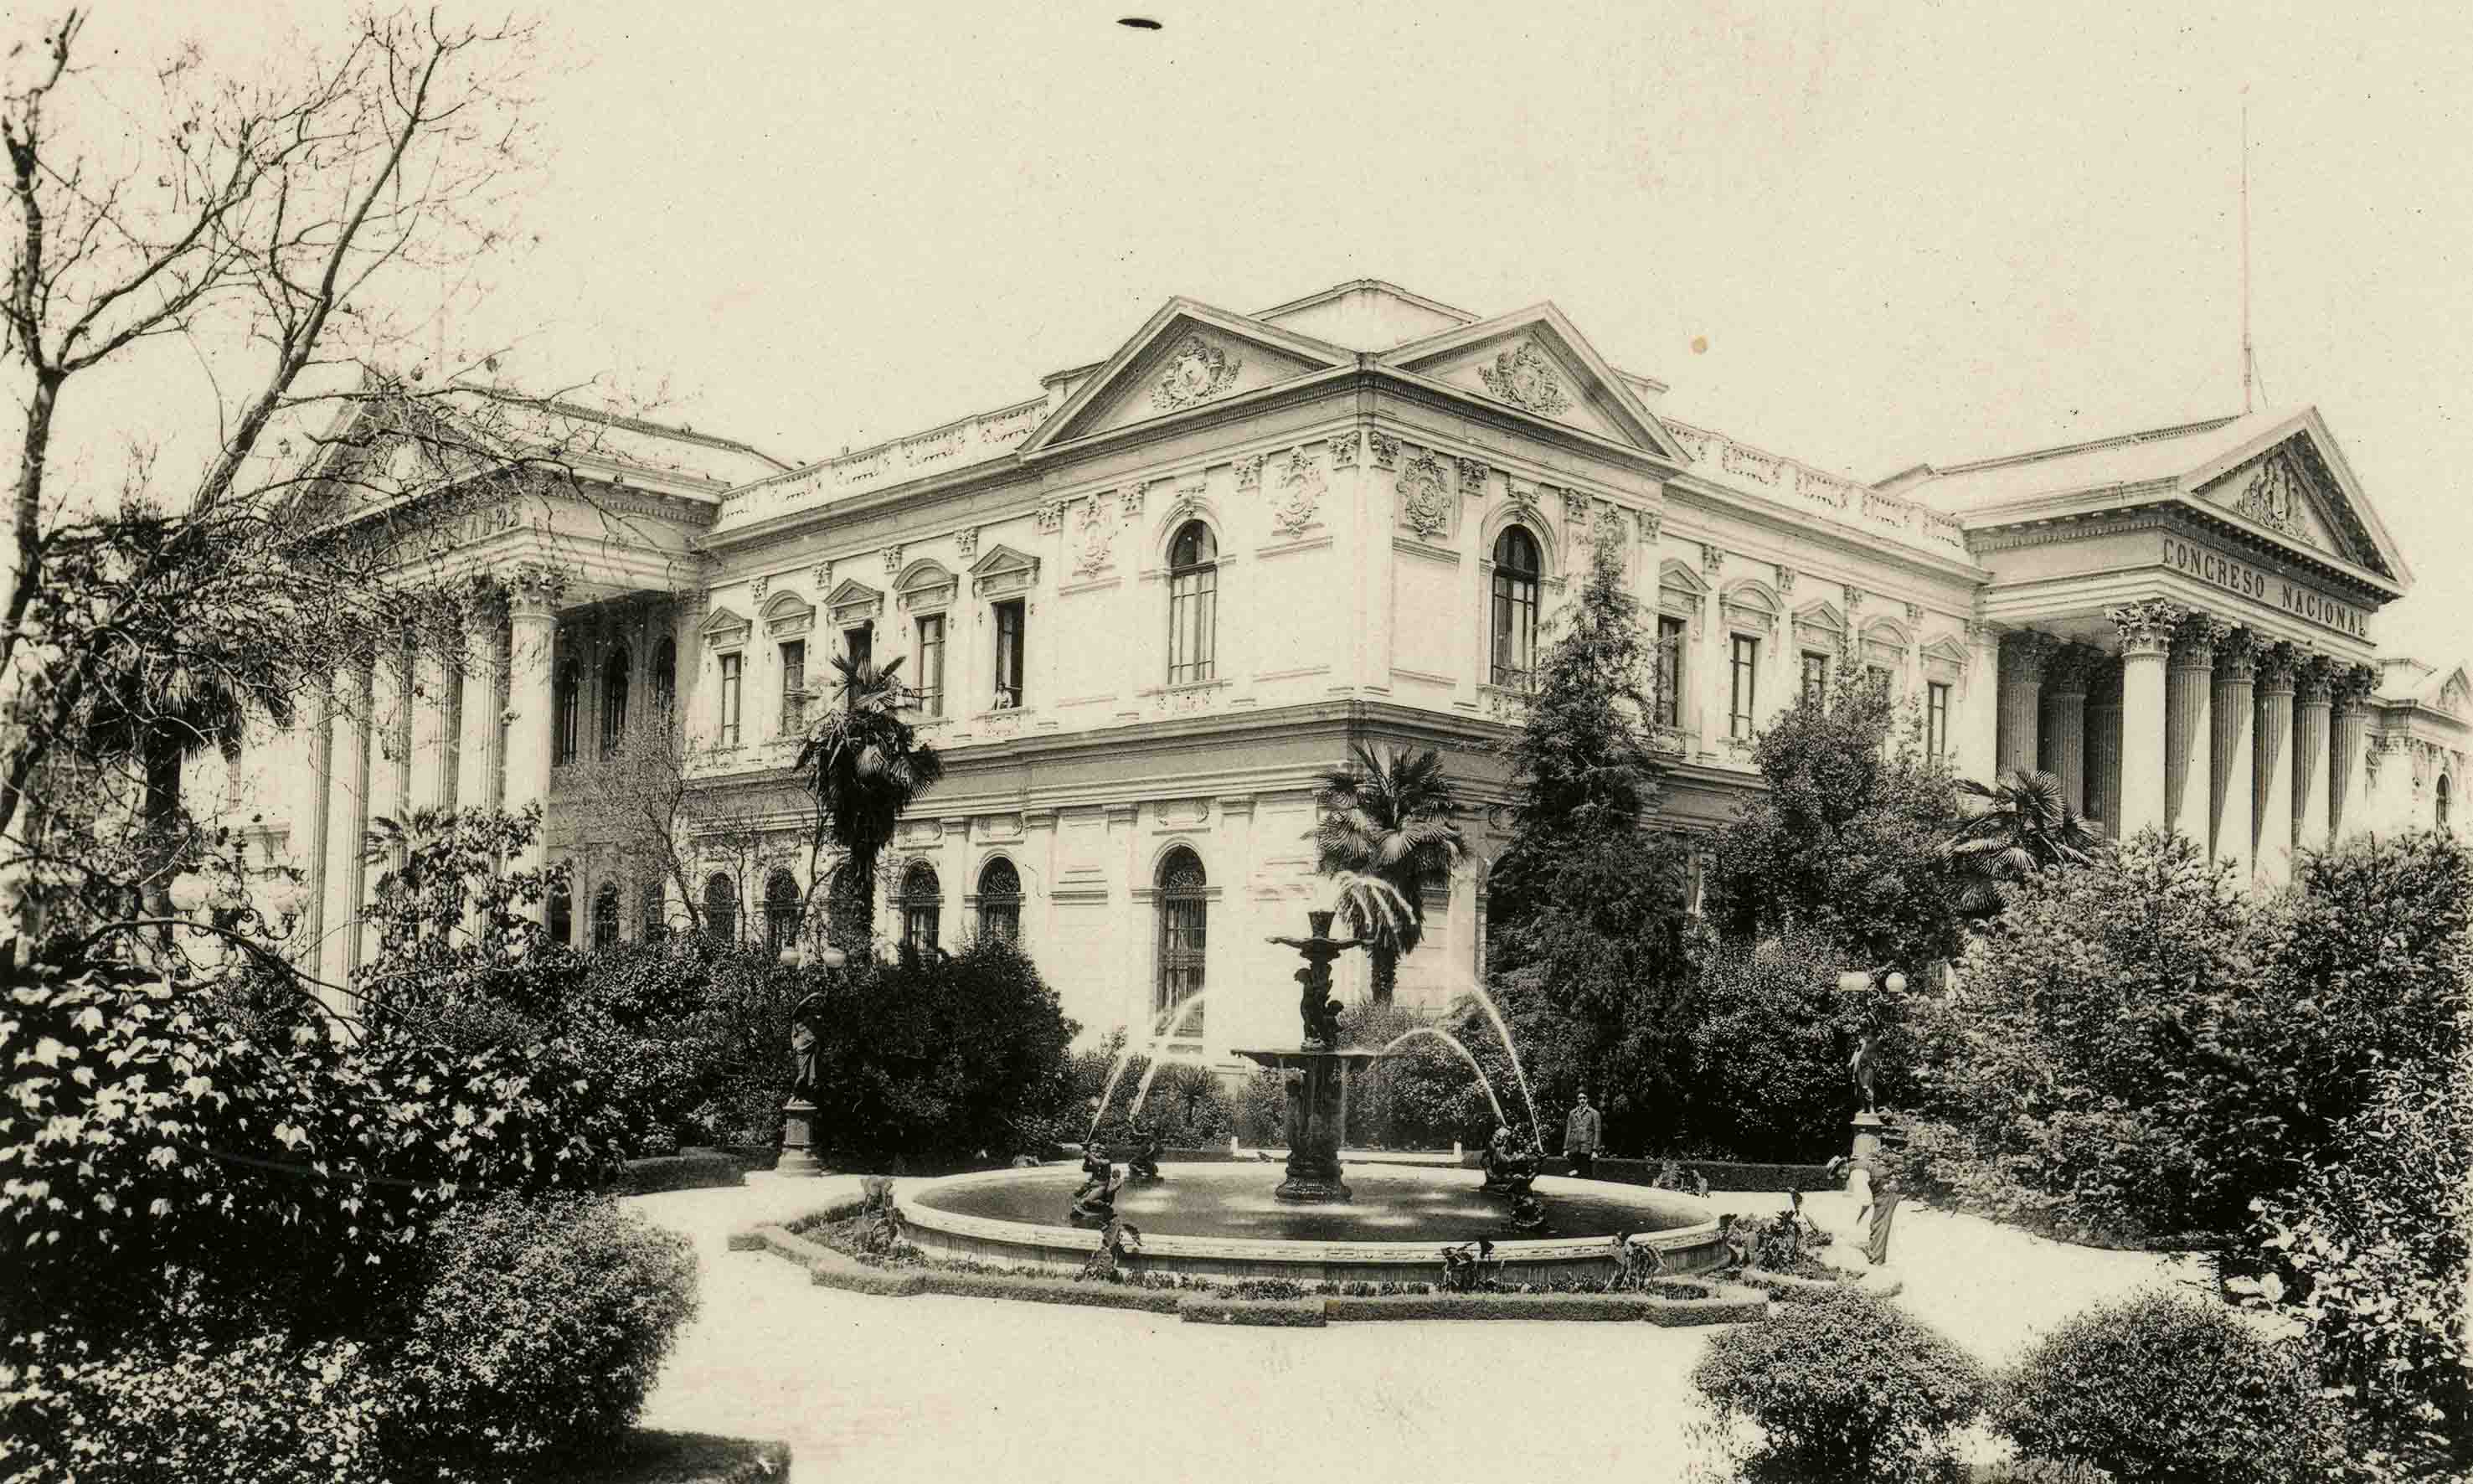 Enterreno - Fotos históricas de chile - fotos antiguas de Chile - Jardines del Ex Congreso, ca. 1915